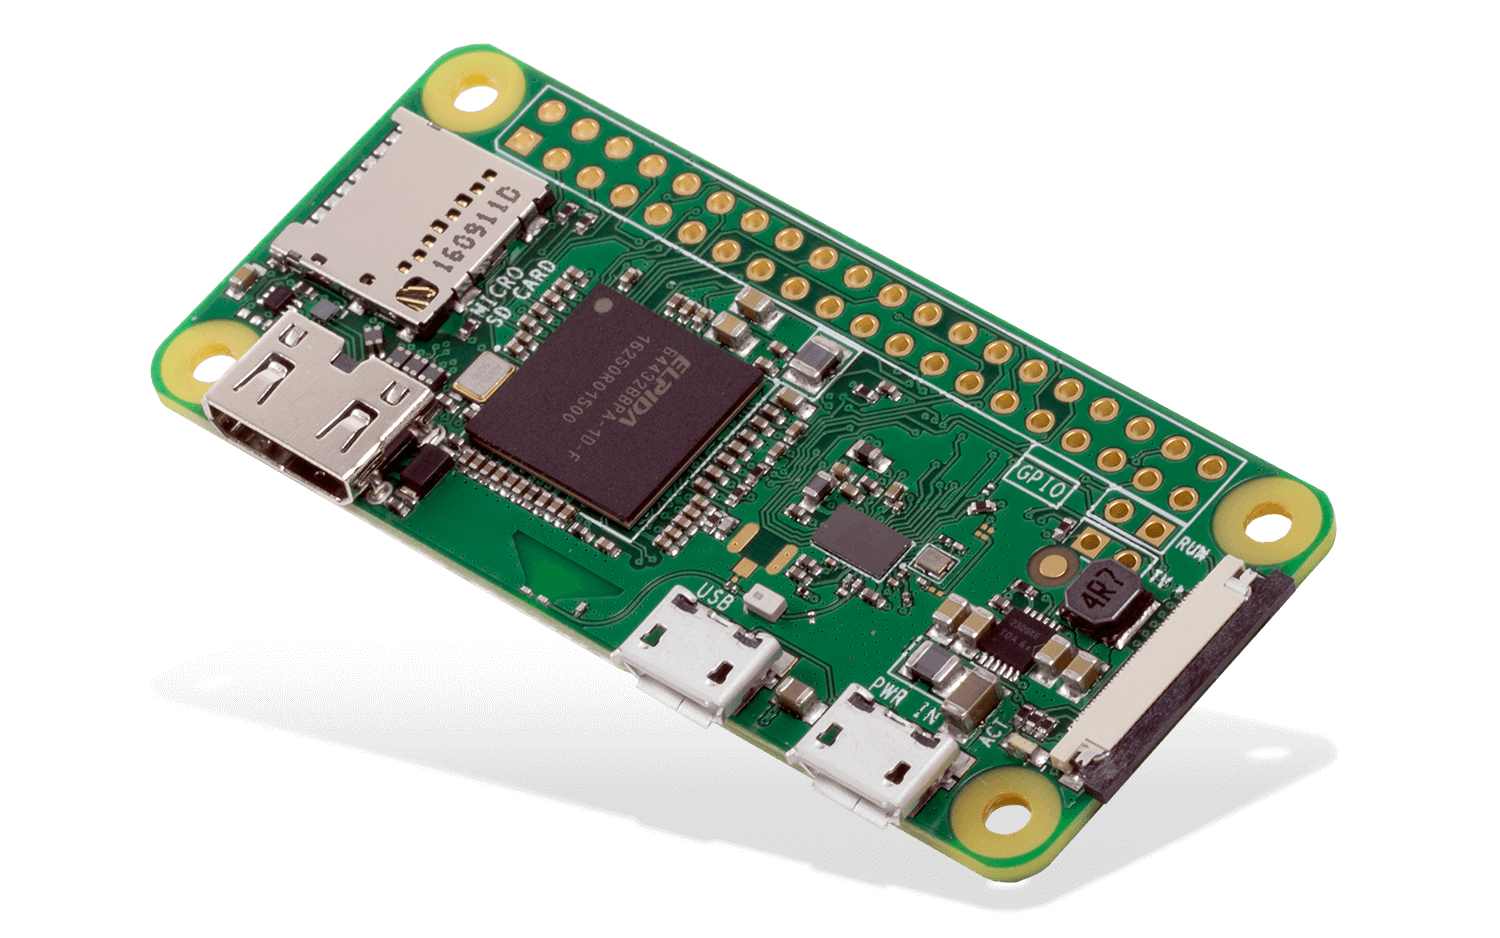 Raspberry-Pi-zero-wireless-board-details